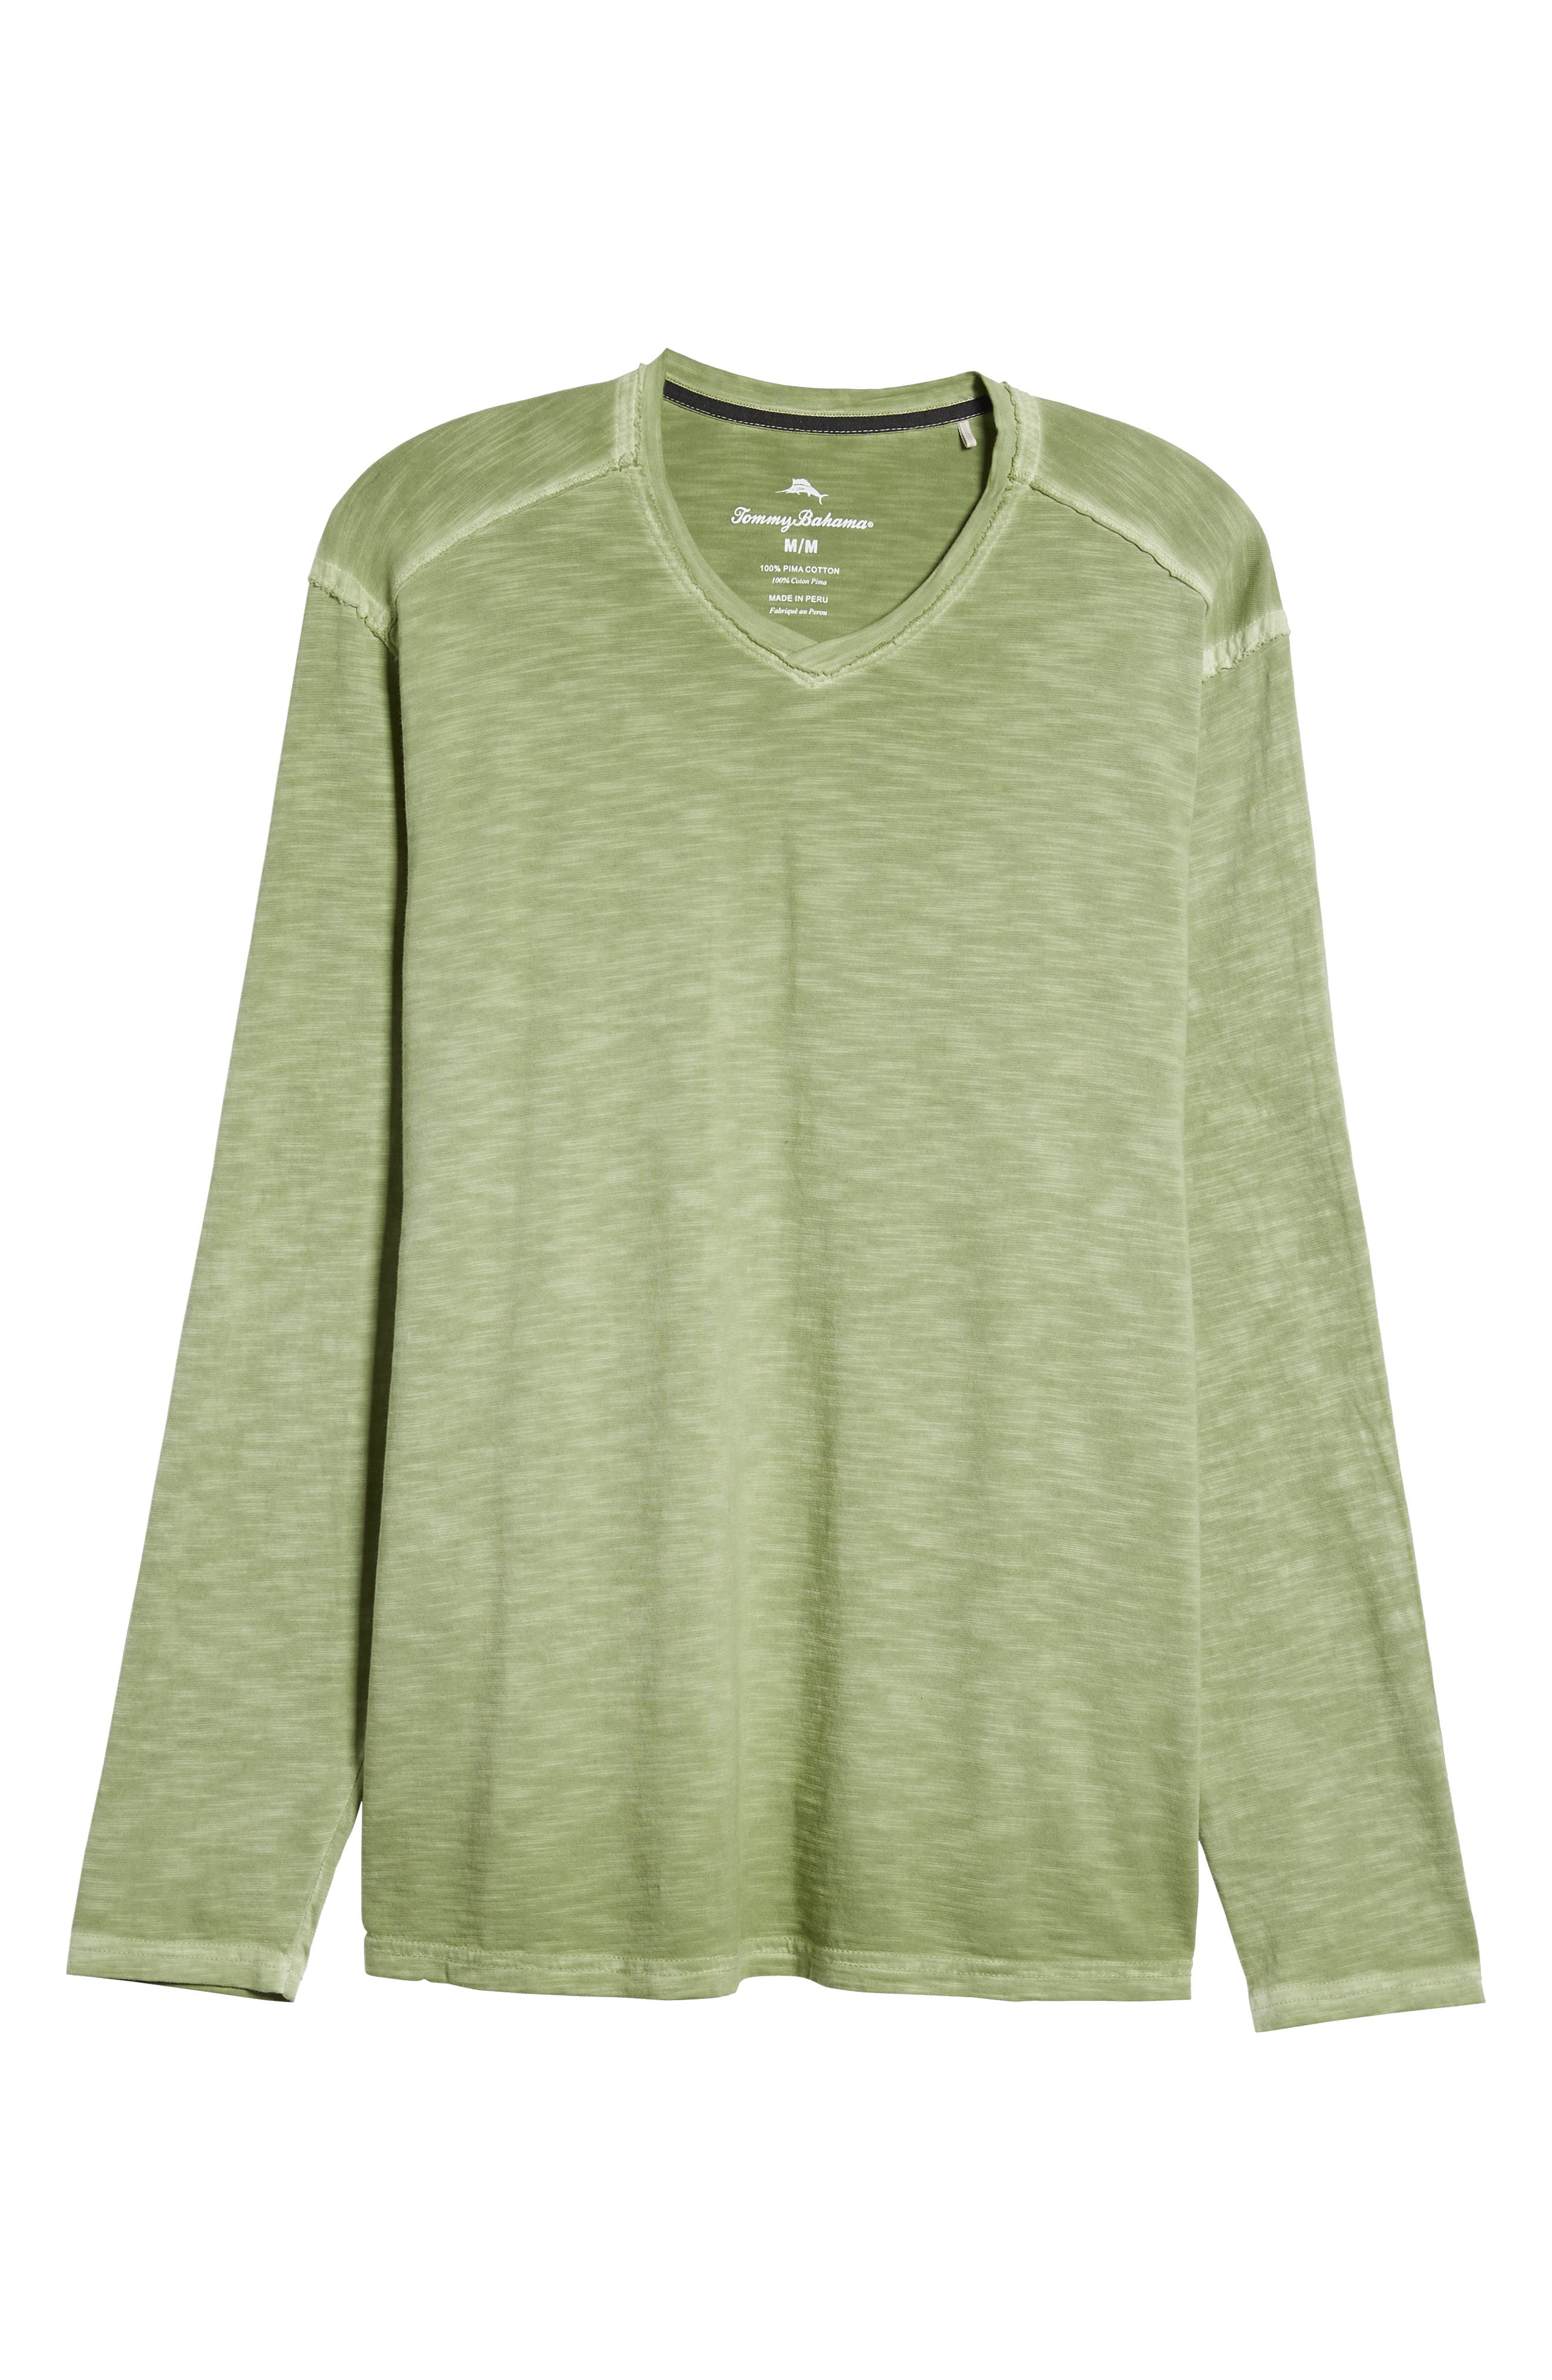 Suncoast Shores Long Sleeve V-Neck T-Shirt,                             Alternate thumbnail 6, color,                             WILD CLOVER